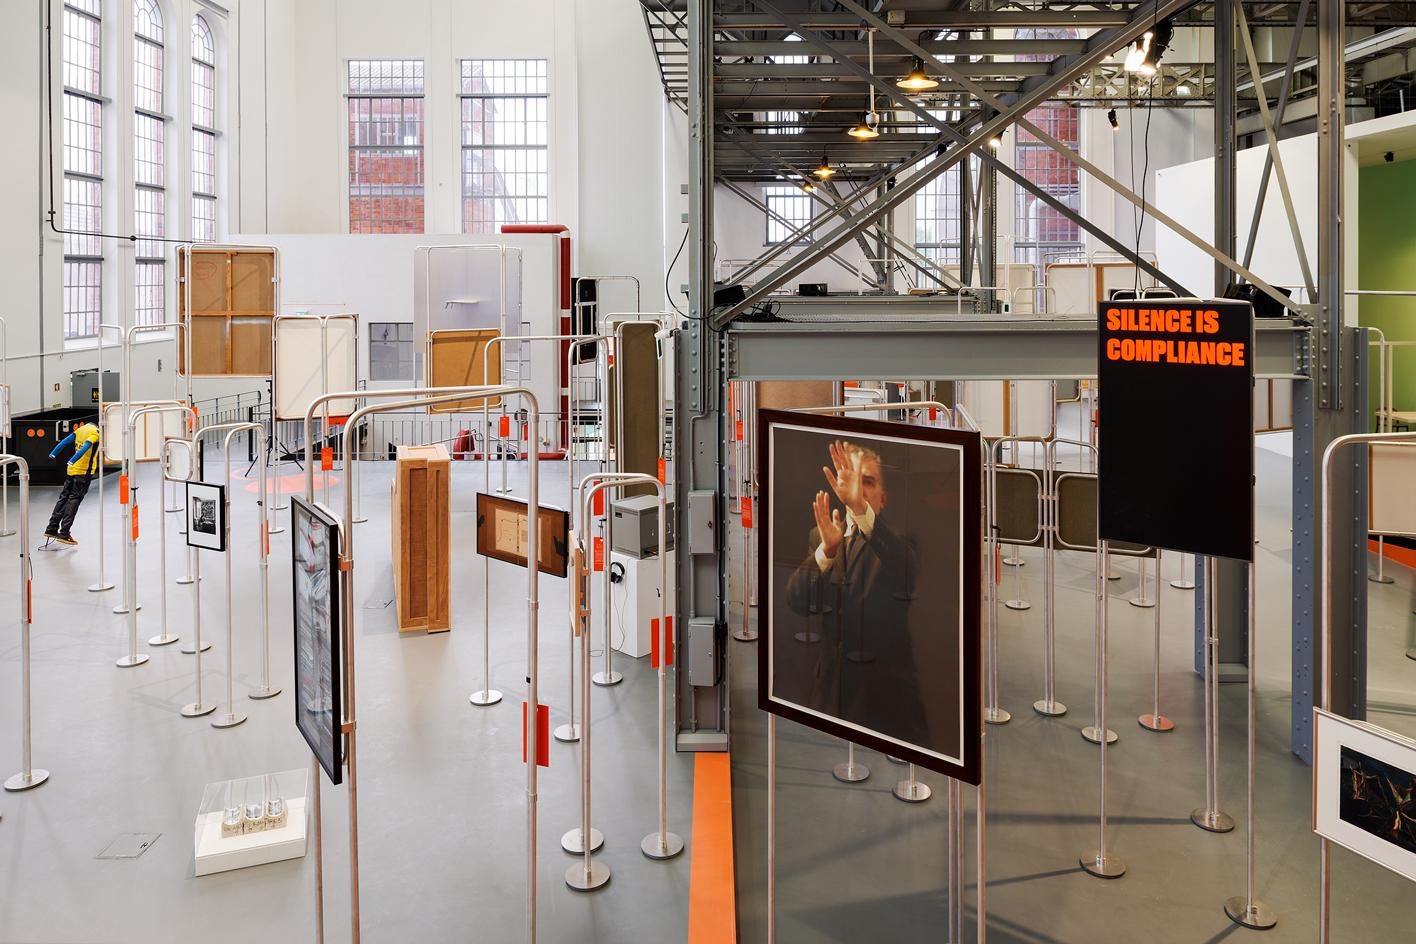 Installation view of 'Rehearsal for a Community',MAAT – Museum of Art, Architecture and Technology.Photography: Daniel Malhão, part of the best art gallery conversions in Europe